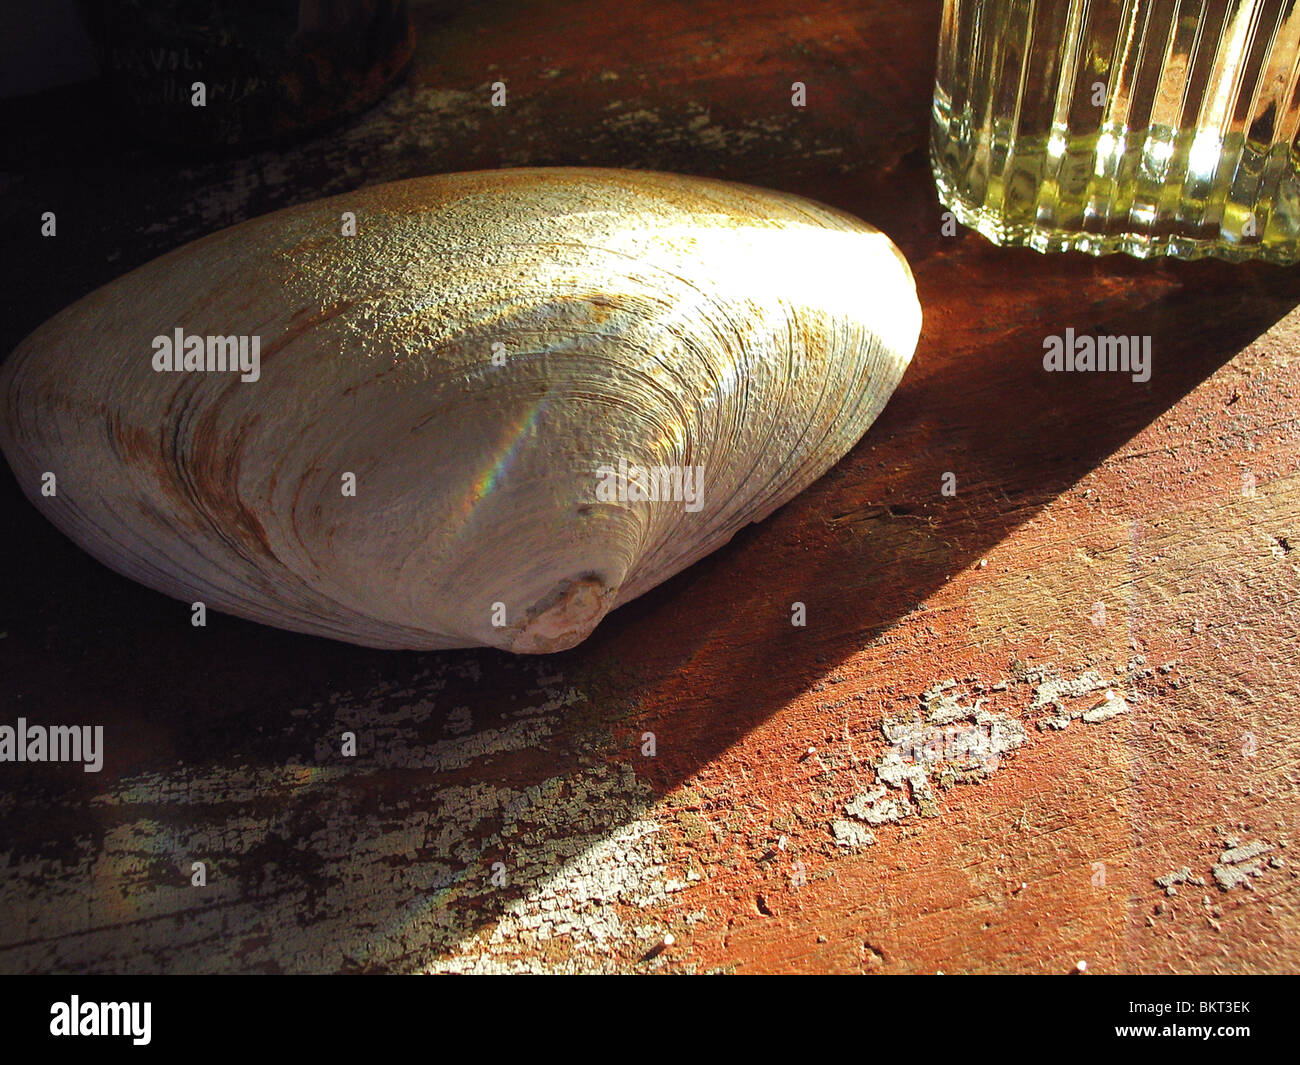 Clam shell on old painted surface. - Stock Image